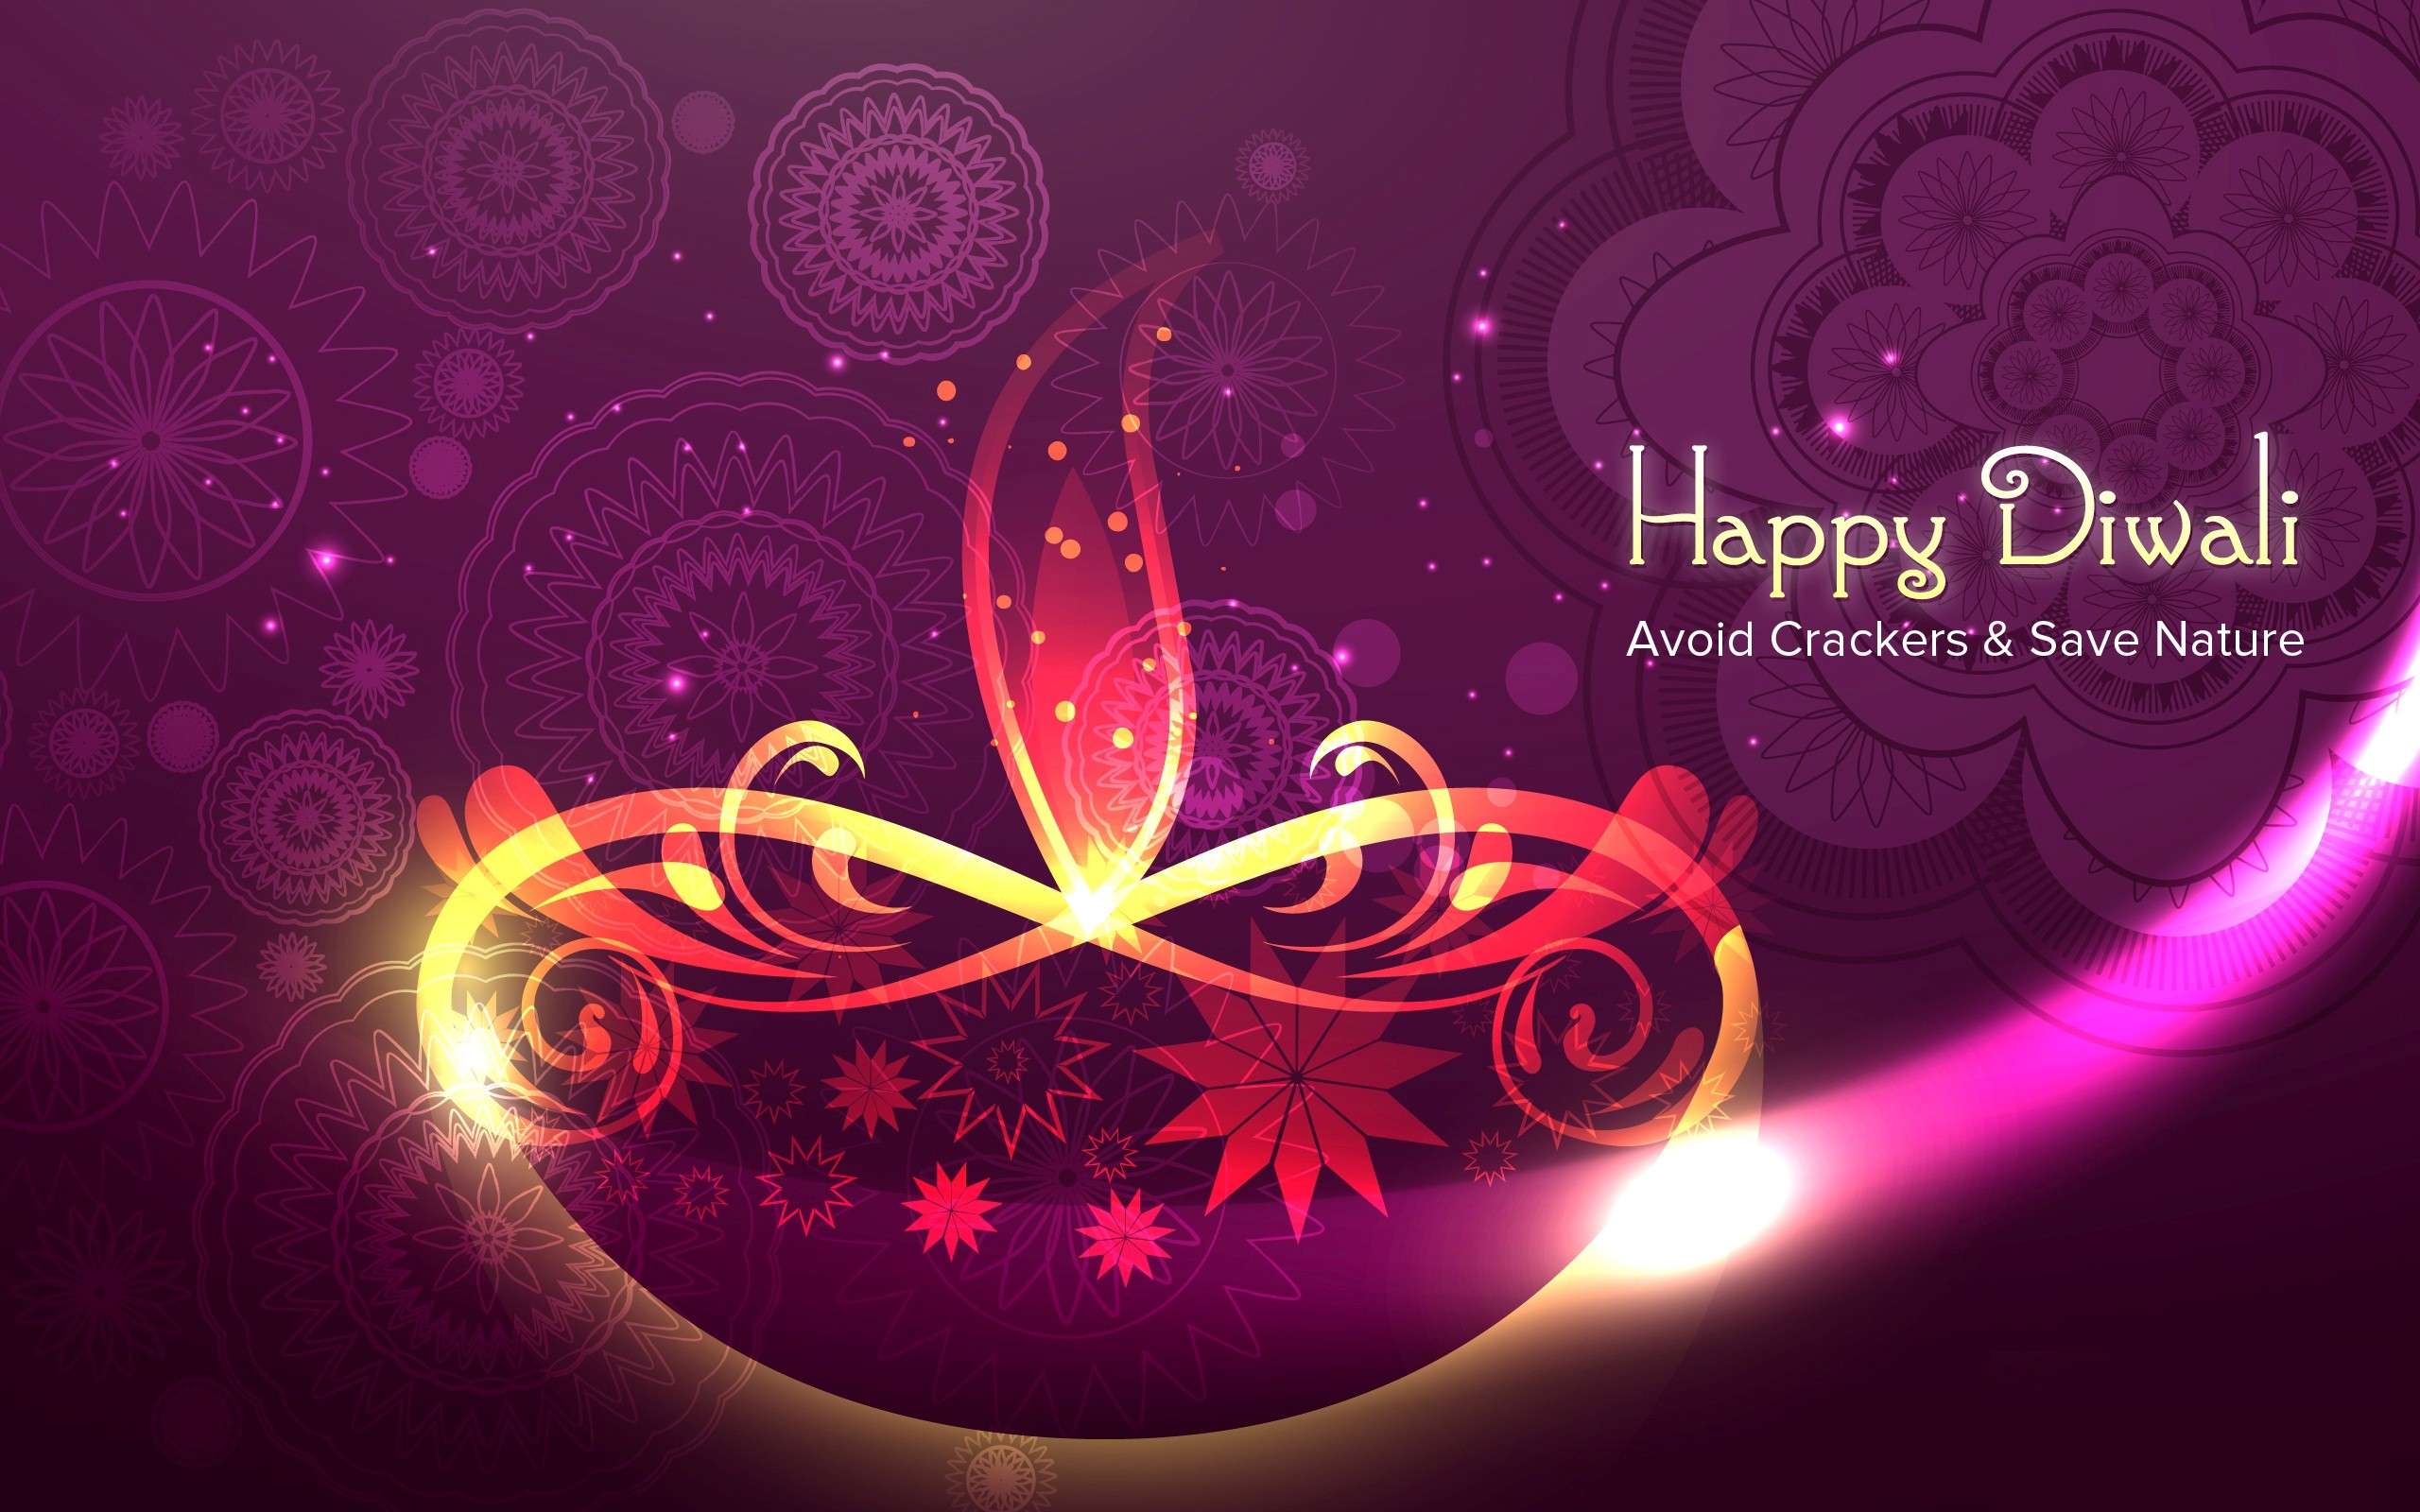 Happy Diwali Wallpaper In HD